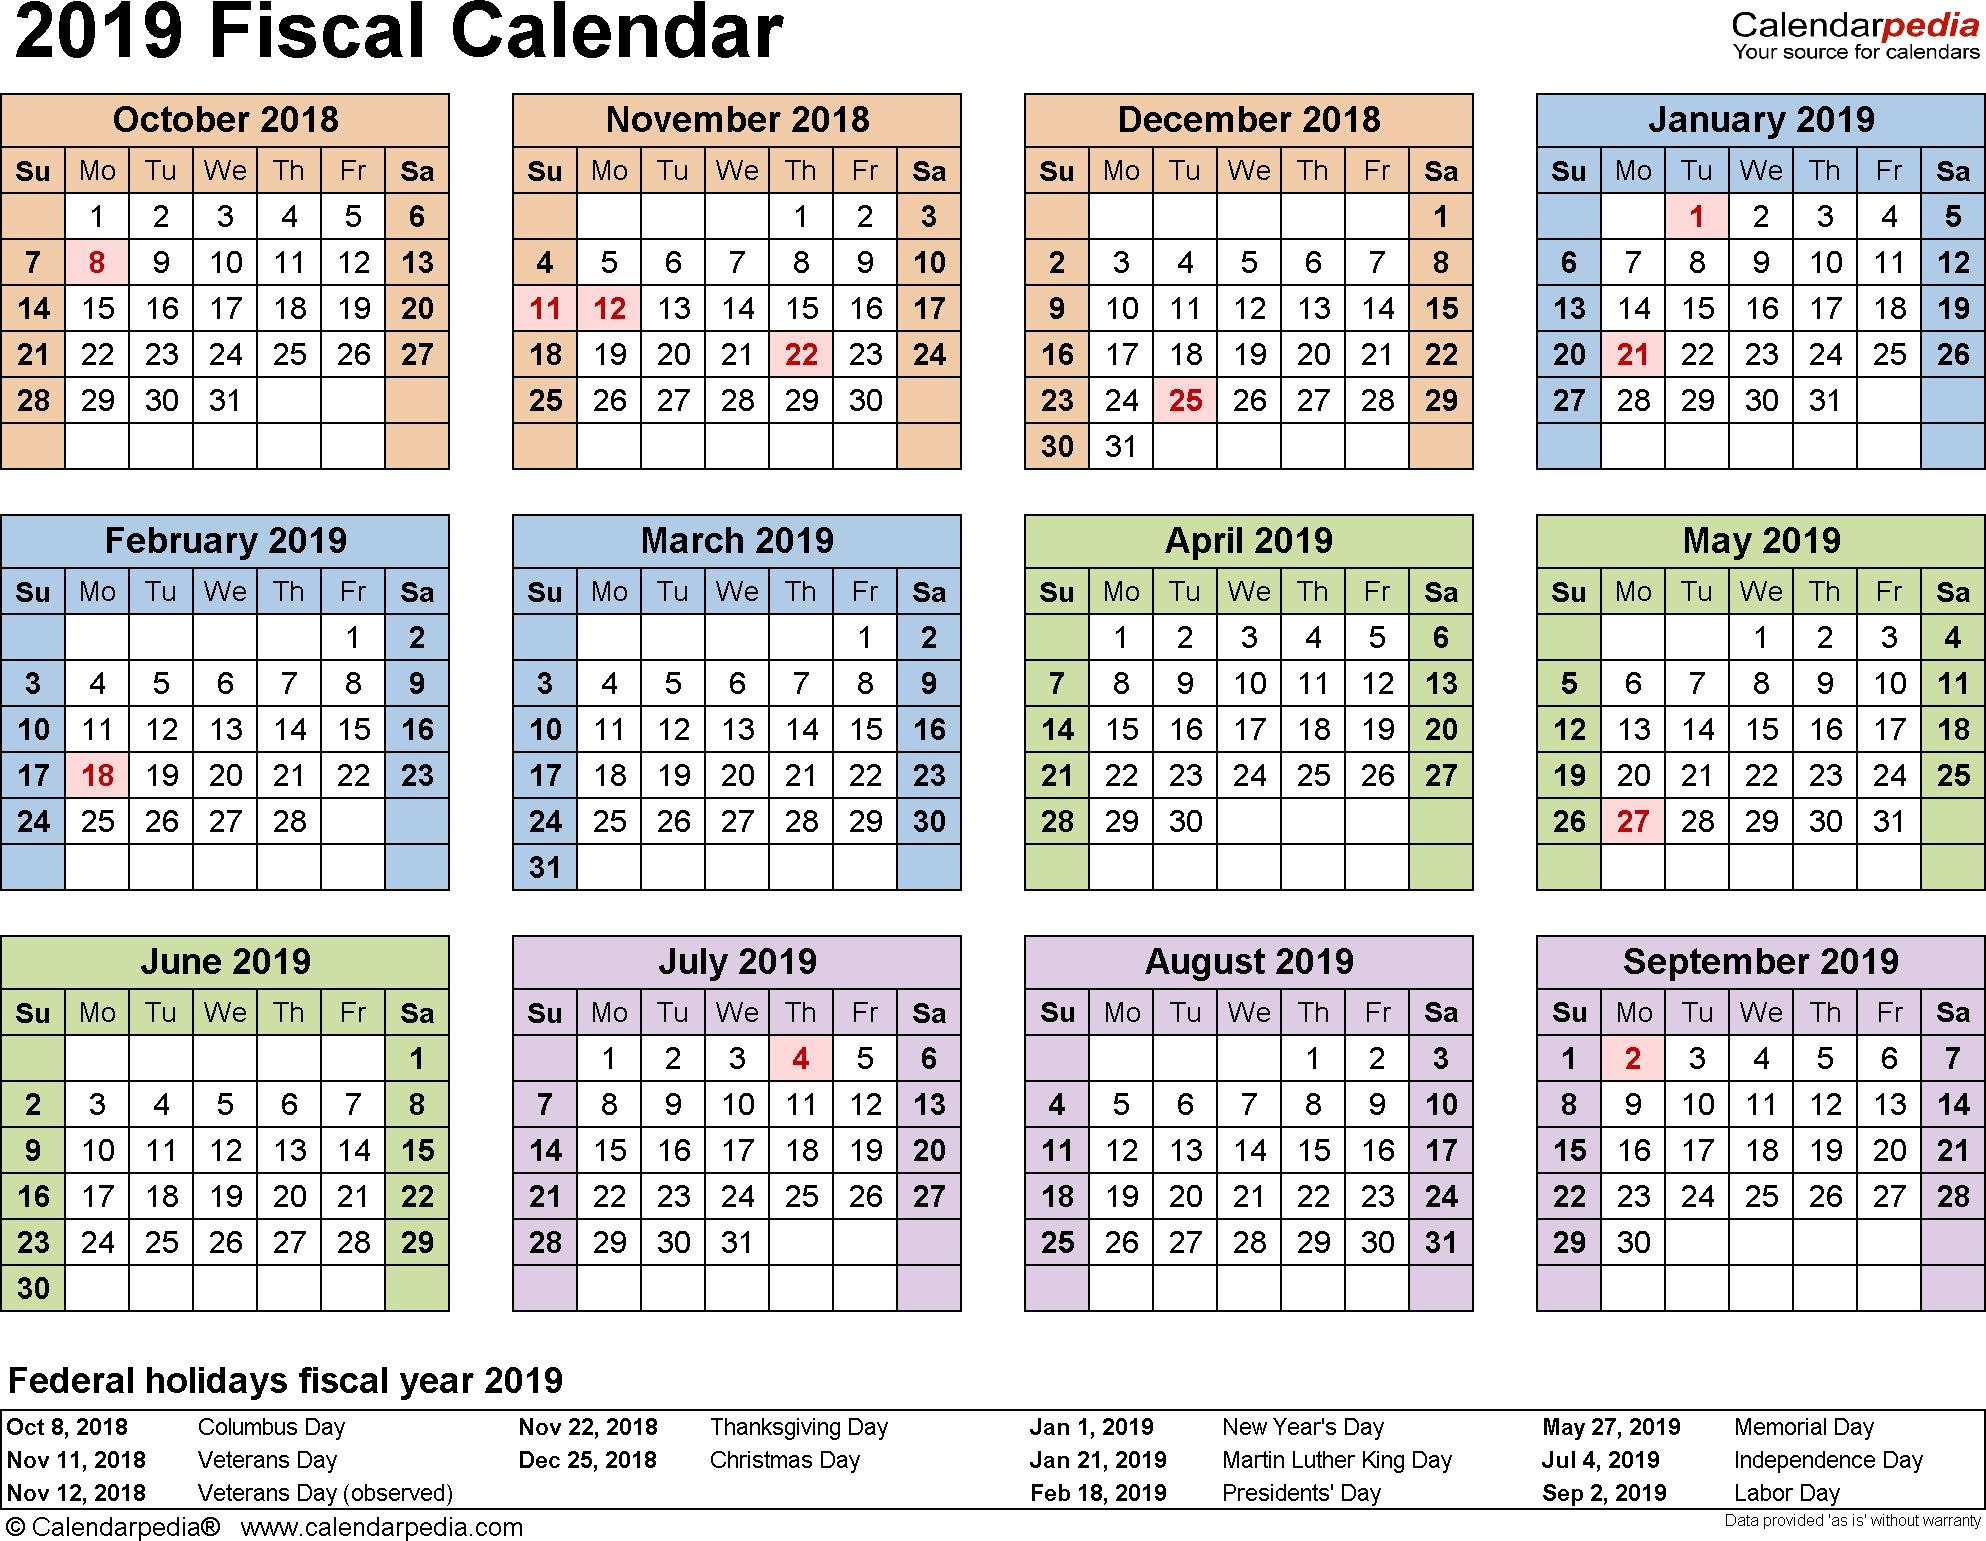 2019-2020 Calendar Financial Week Numbers - Calendar throughout Financial Calendar Week Numbers 2019